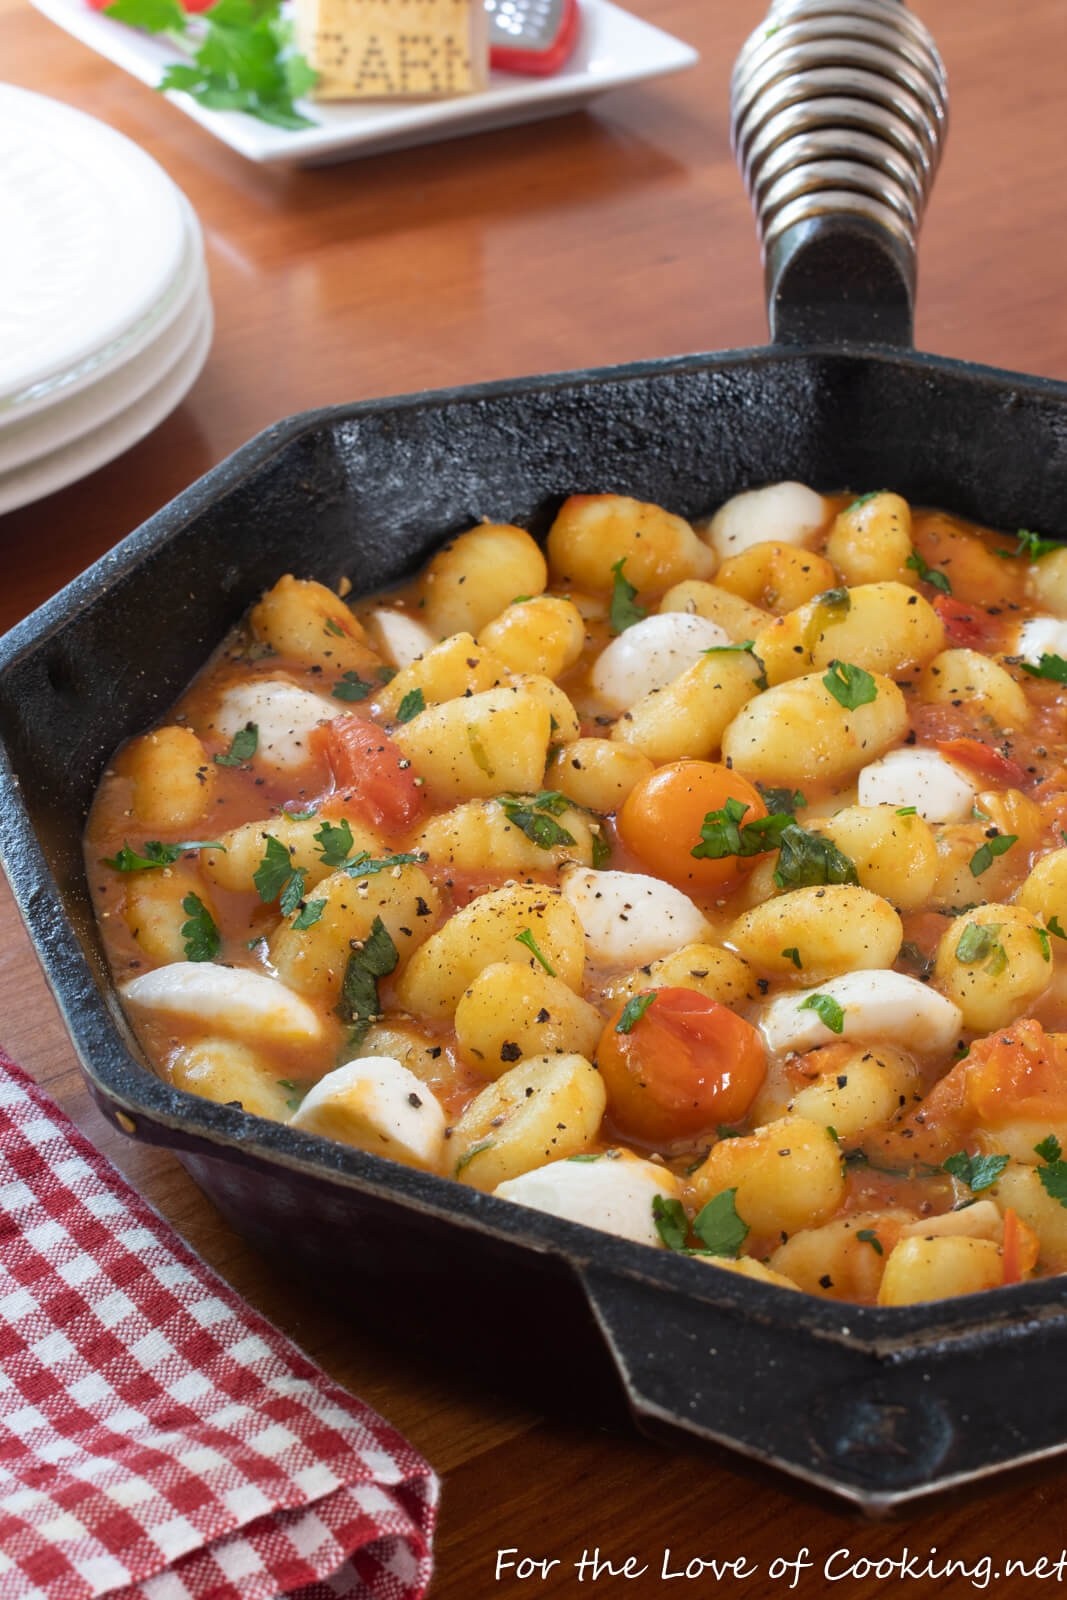 Summer Gnocchi with Burst Cherry Tomato Sauce